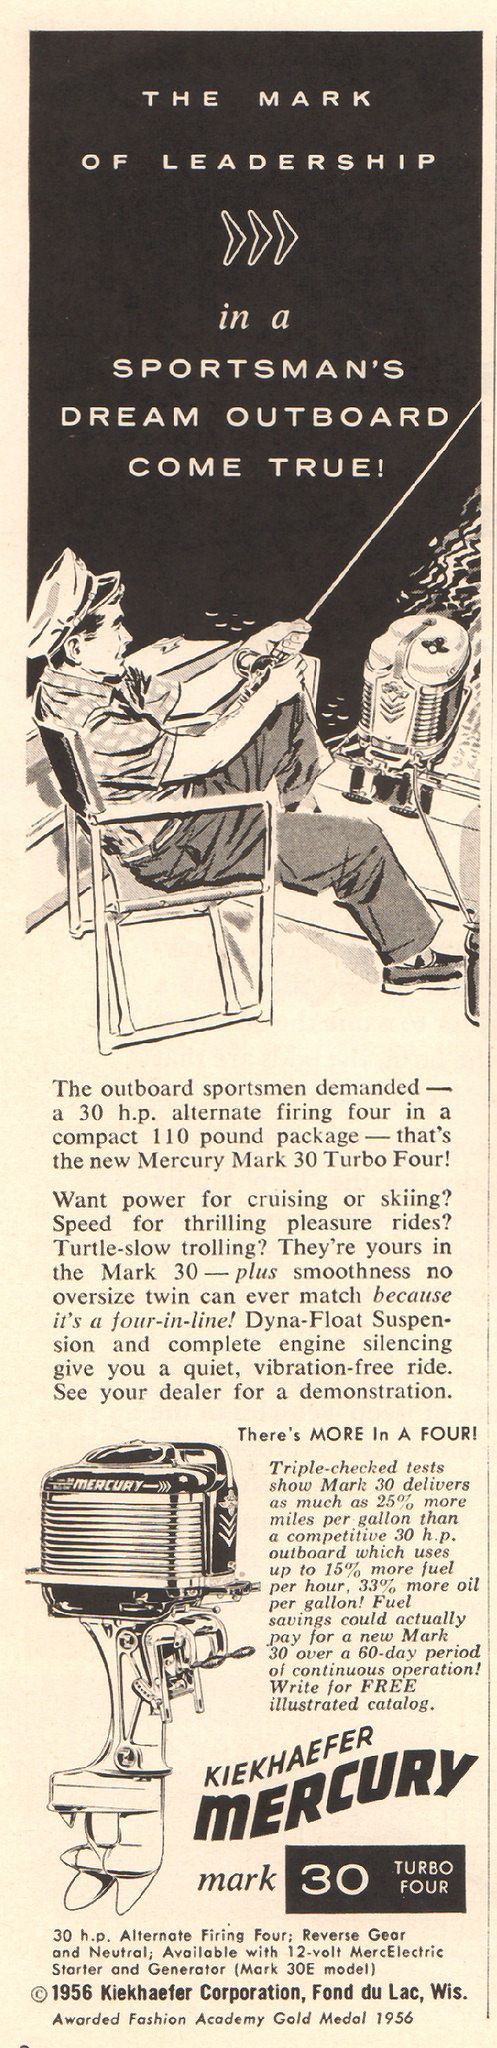 https://flic.kr/p/RhusCh | 1956 Mercury Outboard Motor Advertisement Time April 2 1956 | 1956 Mercury Outboard Motor Advertisement Time April 2 1956